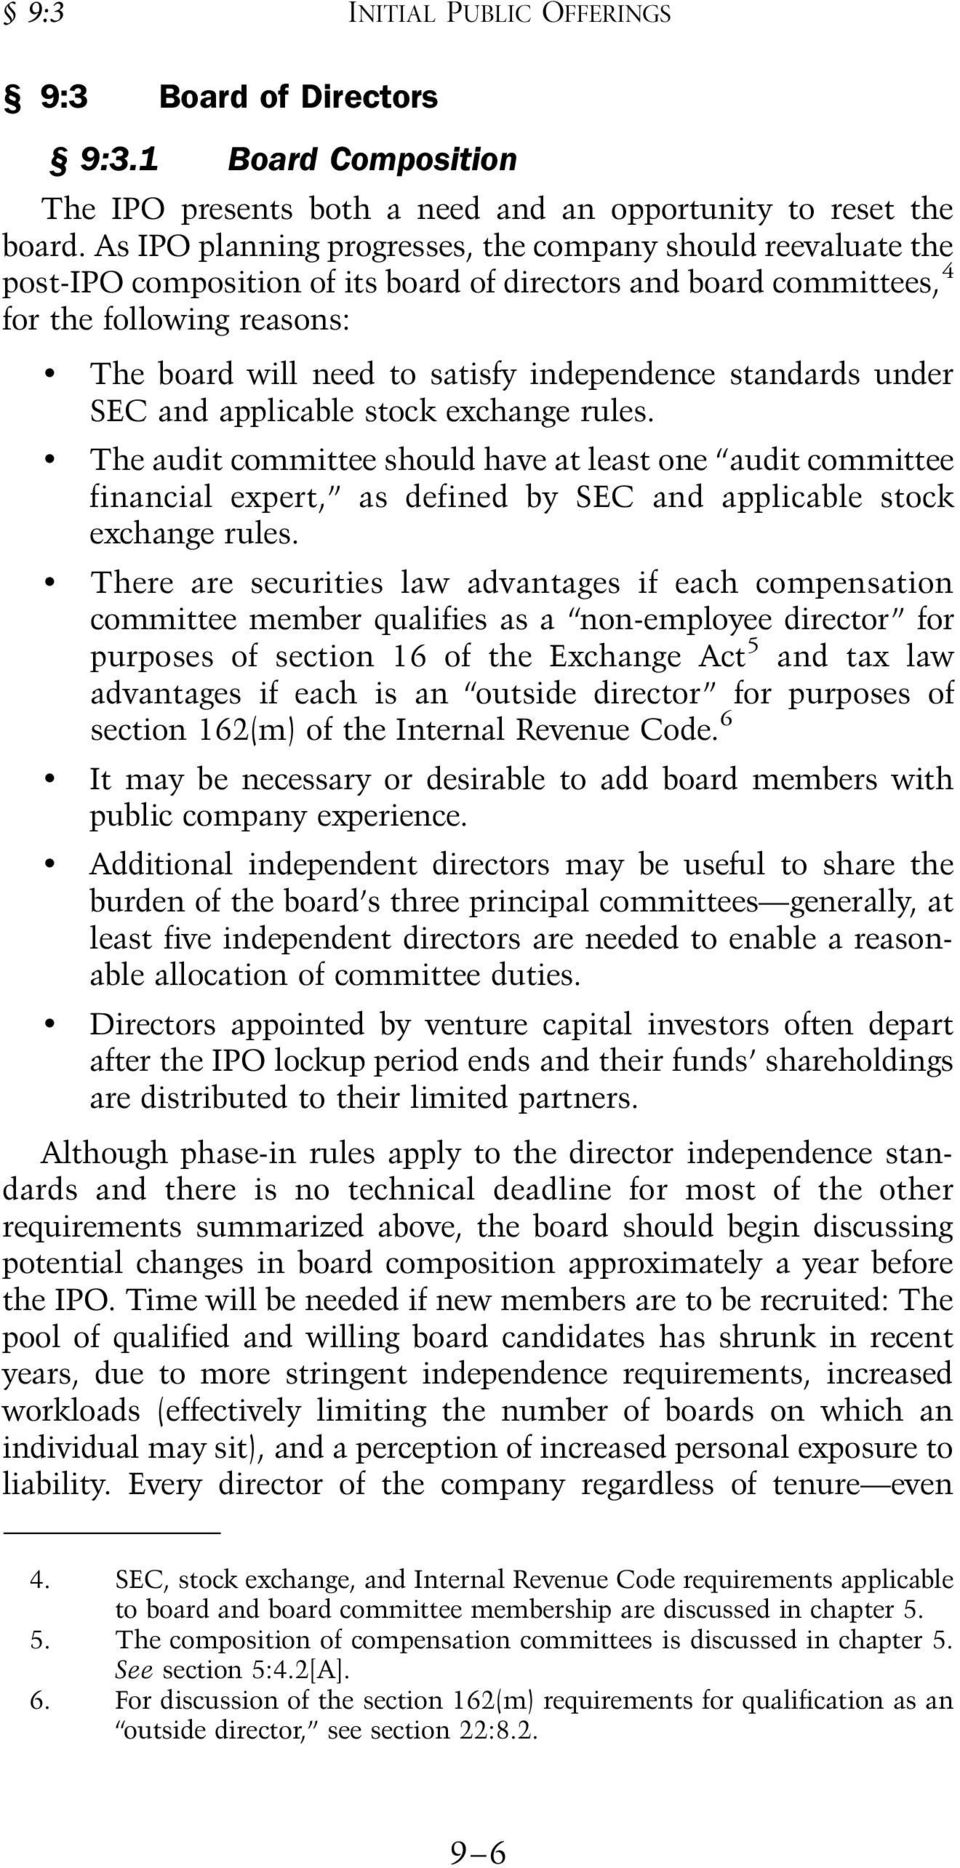 standads unde SEC and applicable stock exchange ules. The audit committee should have at least one audit committee financial expet, as defined by SEC and applicable stock exchange ules.